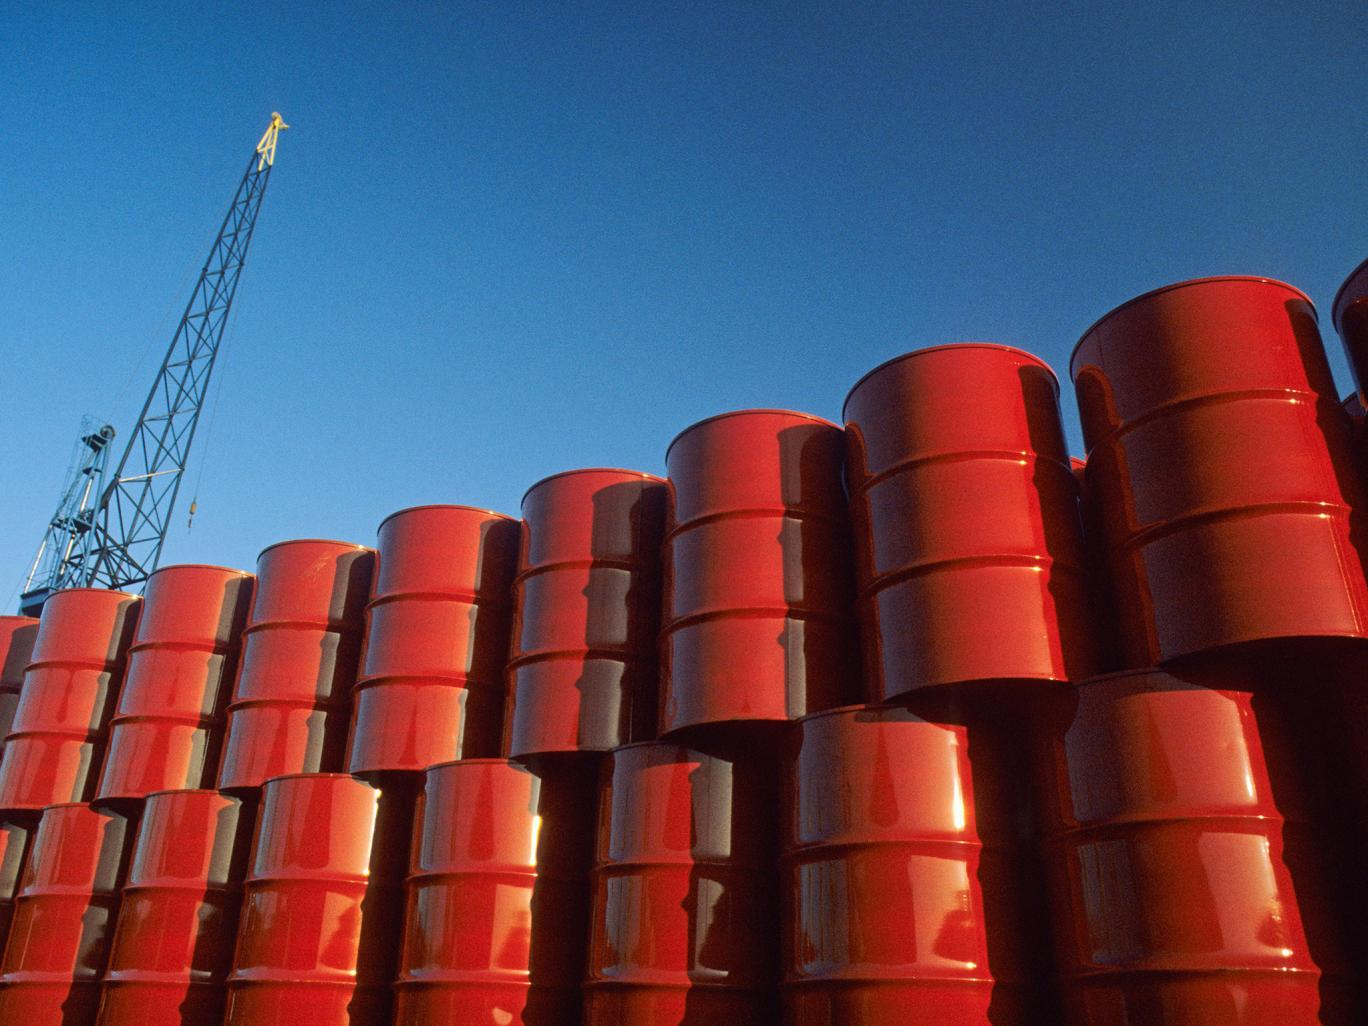 57-oil-barrel-corbis